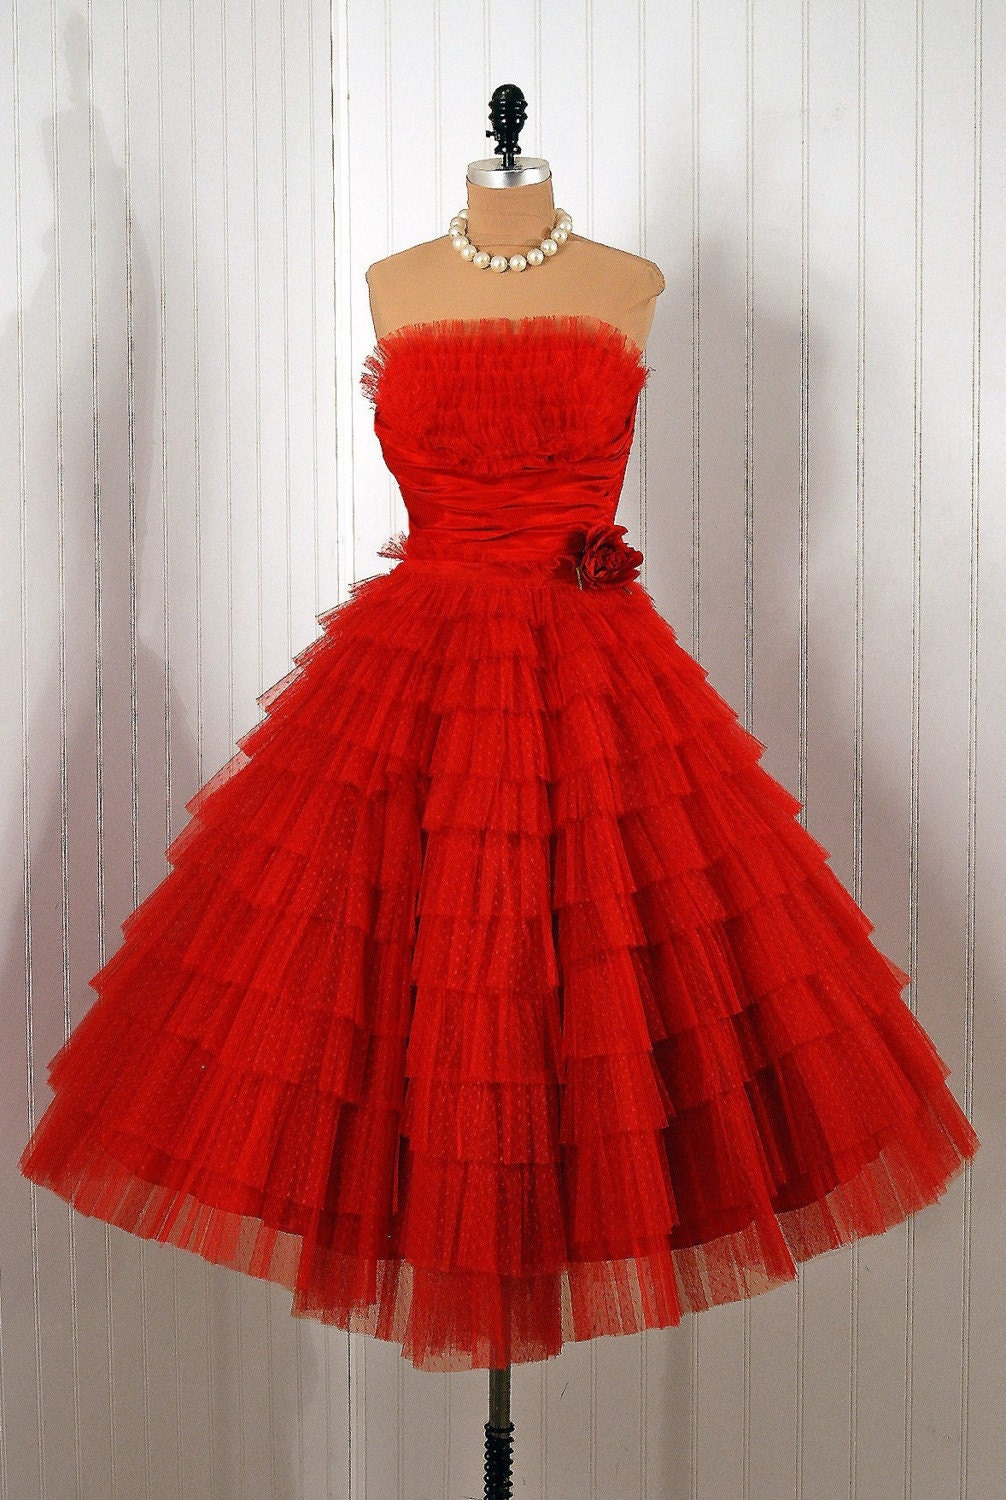 1950's Vintage Ruby-Red Strapless Shelf-Bust Tiered-Ruffle Tulle Rockabilly Party Dress